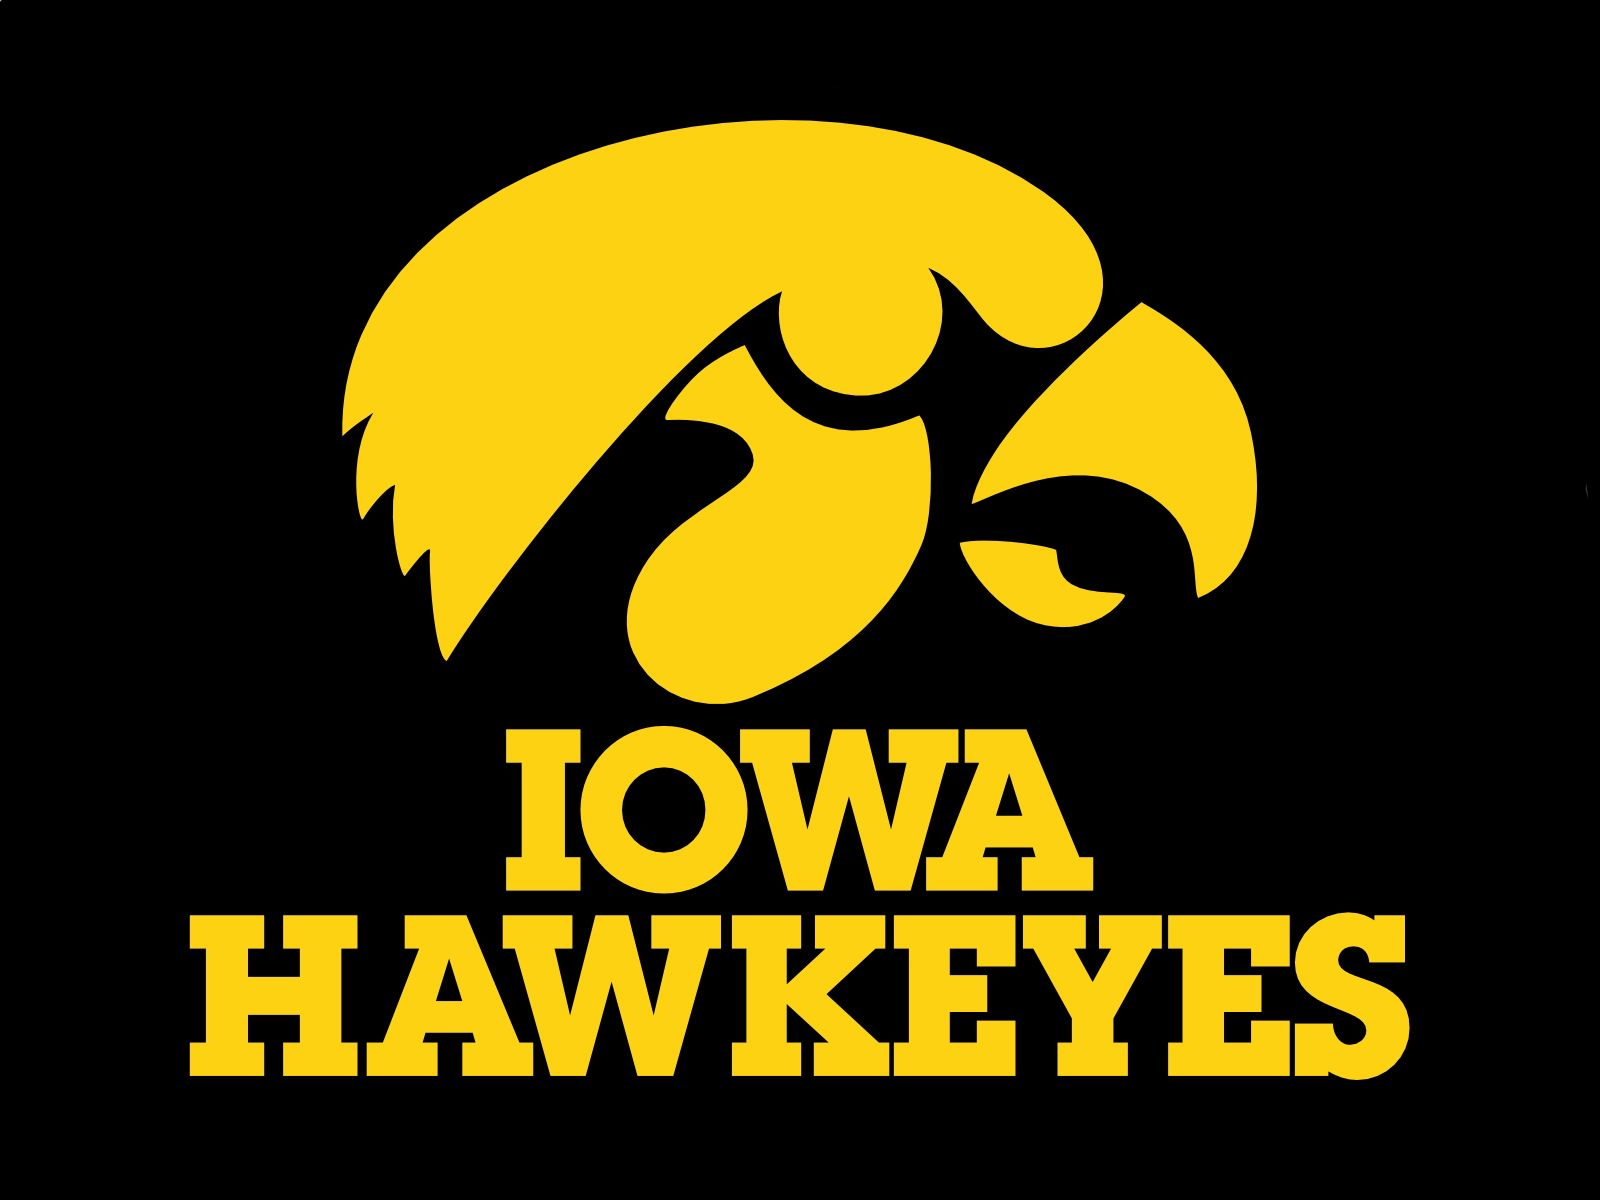 Iowa Hawkeyes Symbol Iowa Hawkeyes Hawkeyes Iowa